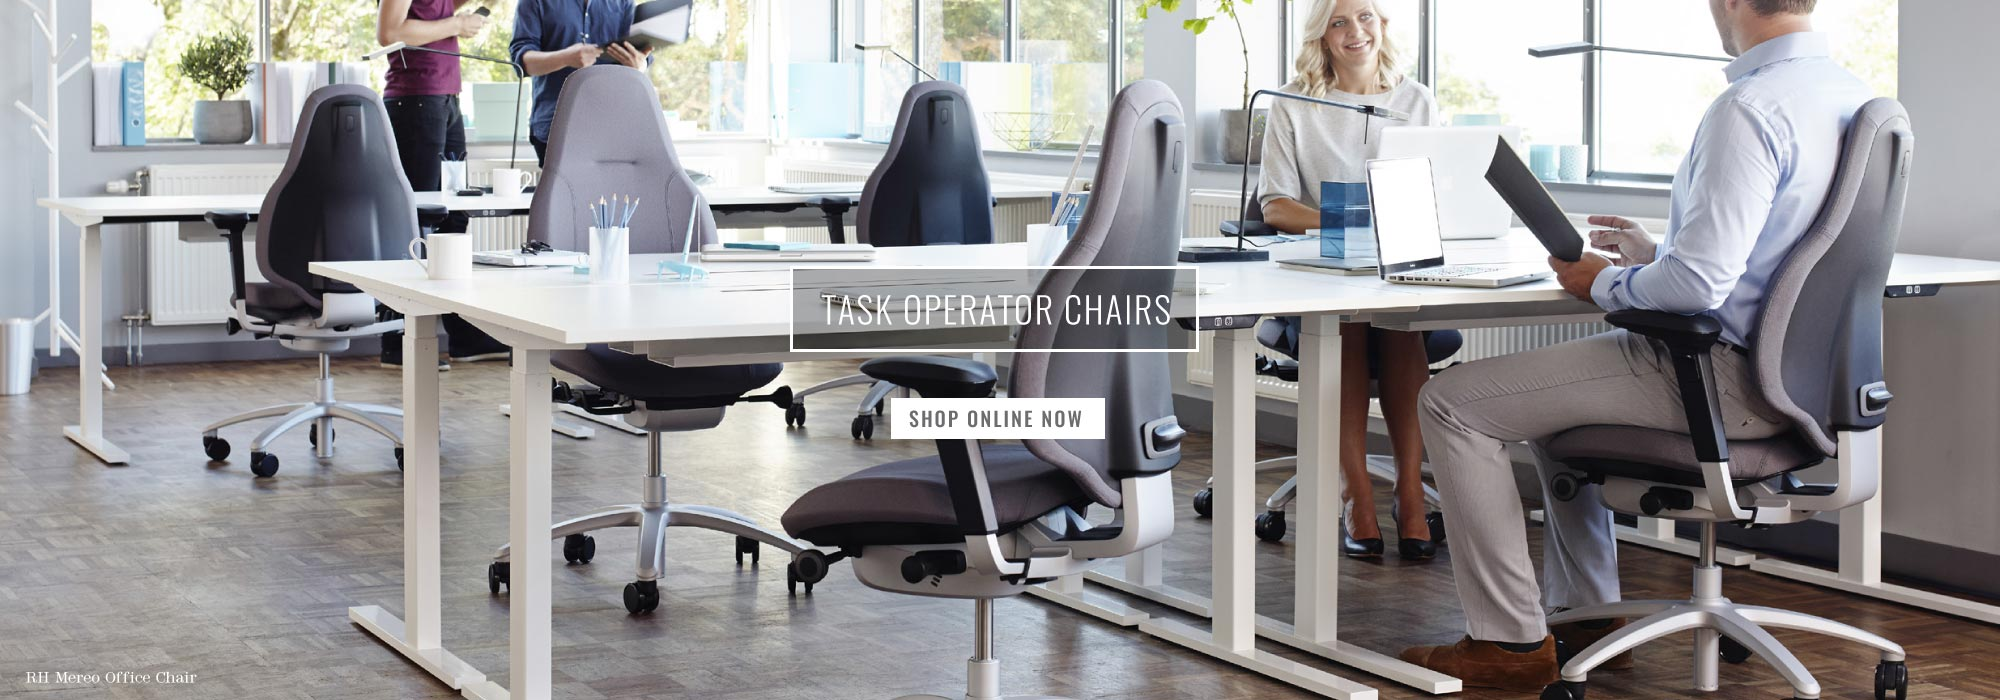 Grey RH Mereo office chair in a contemporary office